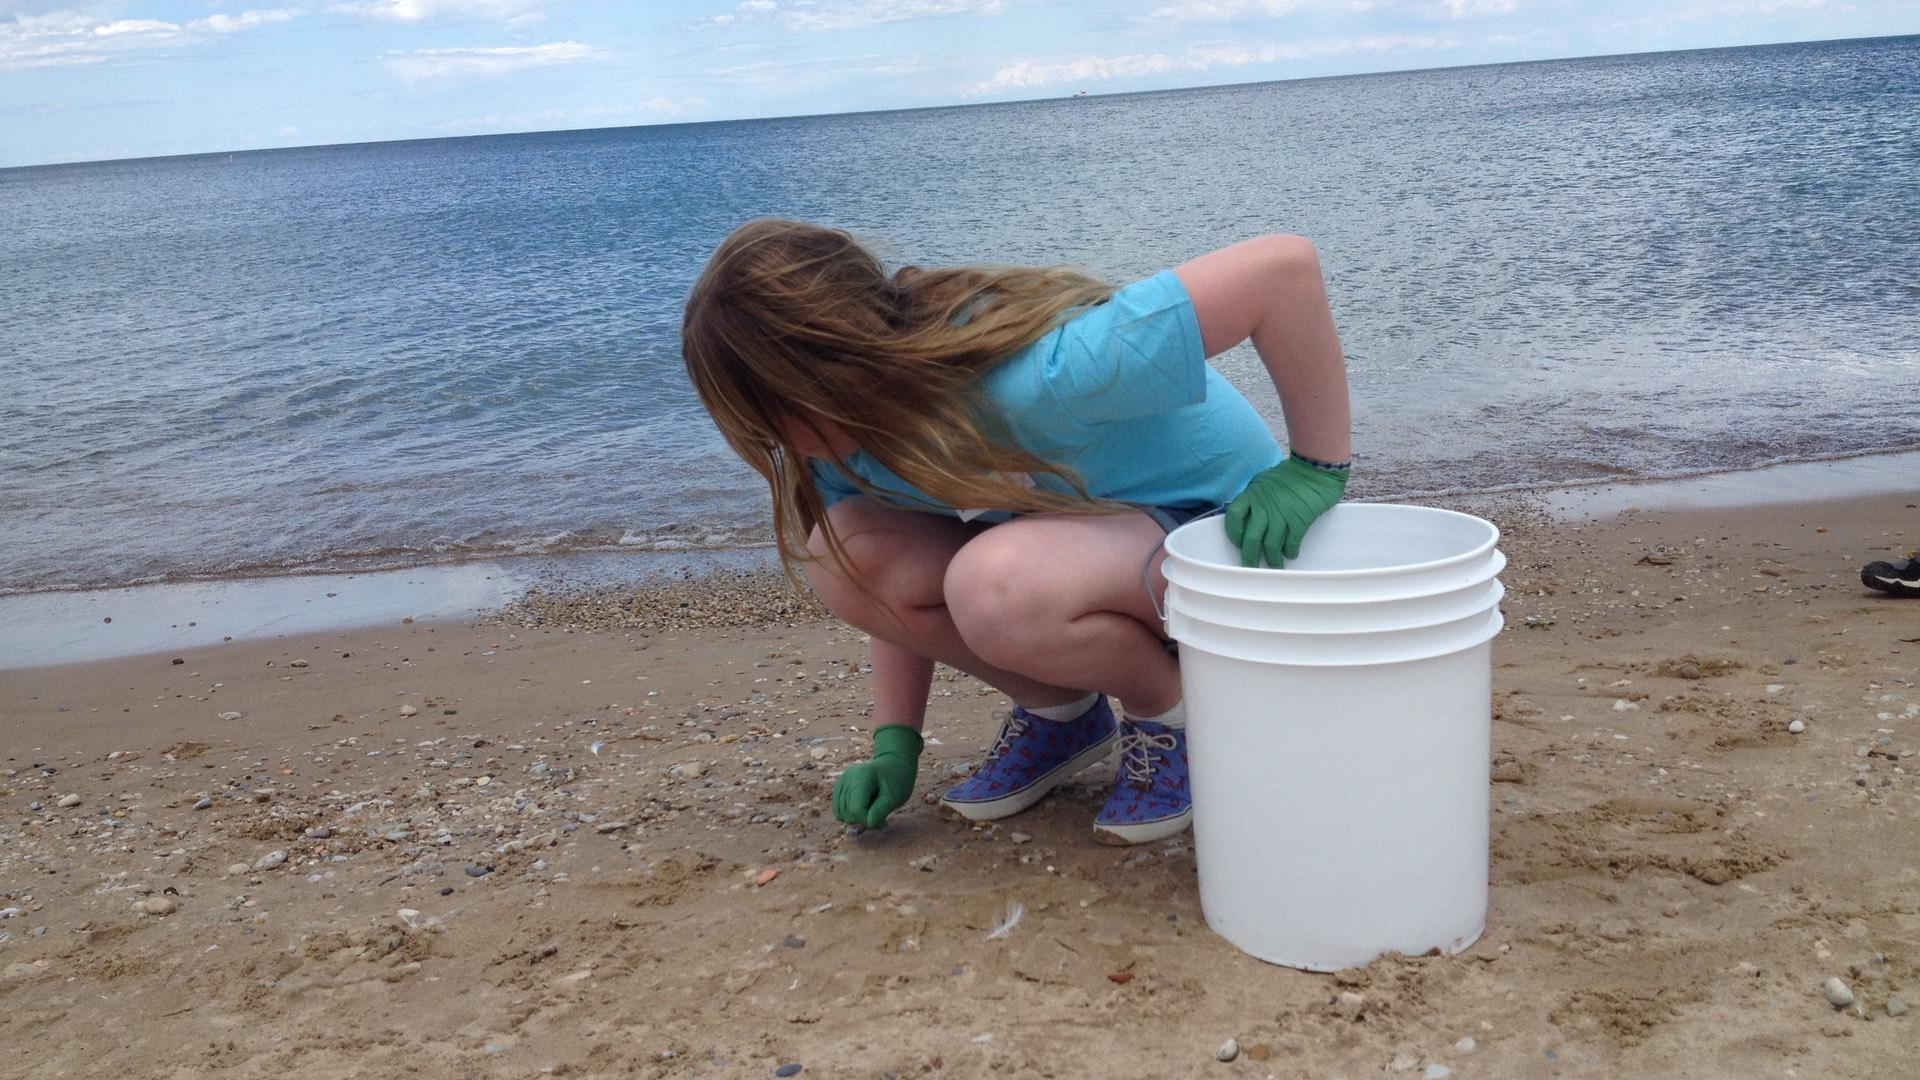 Volunteers are needed for daily beach cleanups through Sept. 26. (Courtesy of Shedd Aquarium)